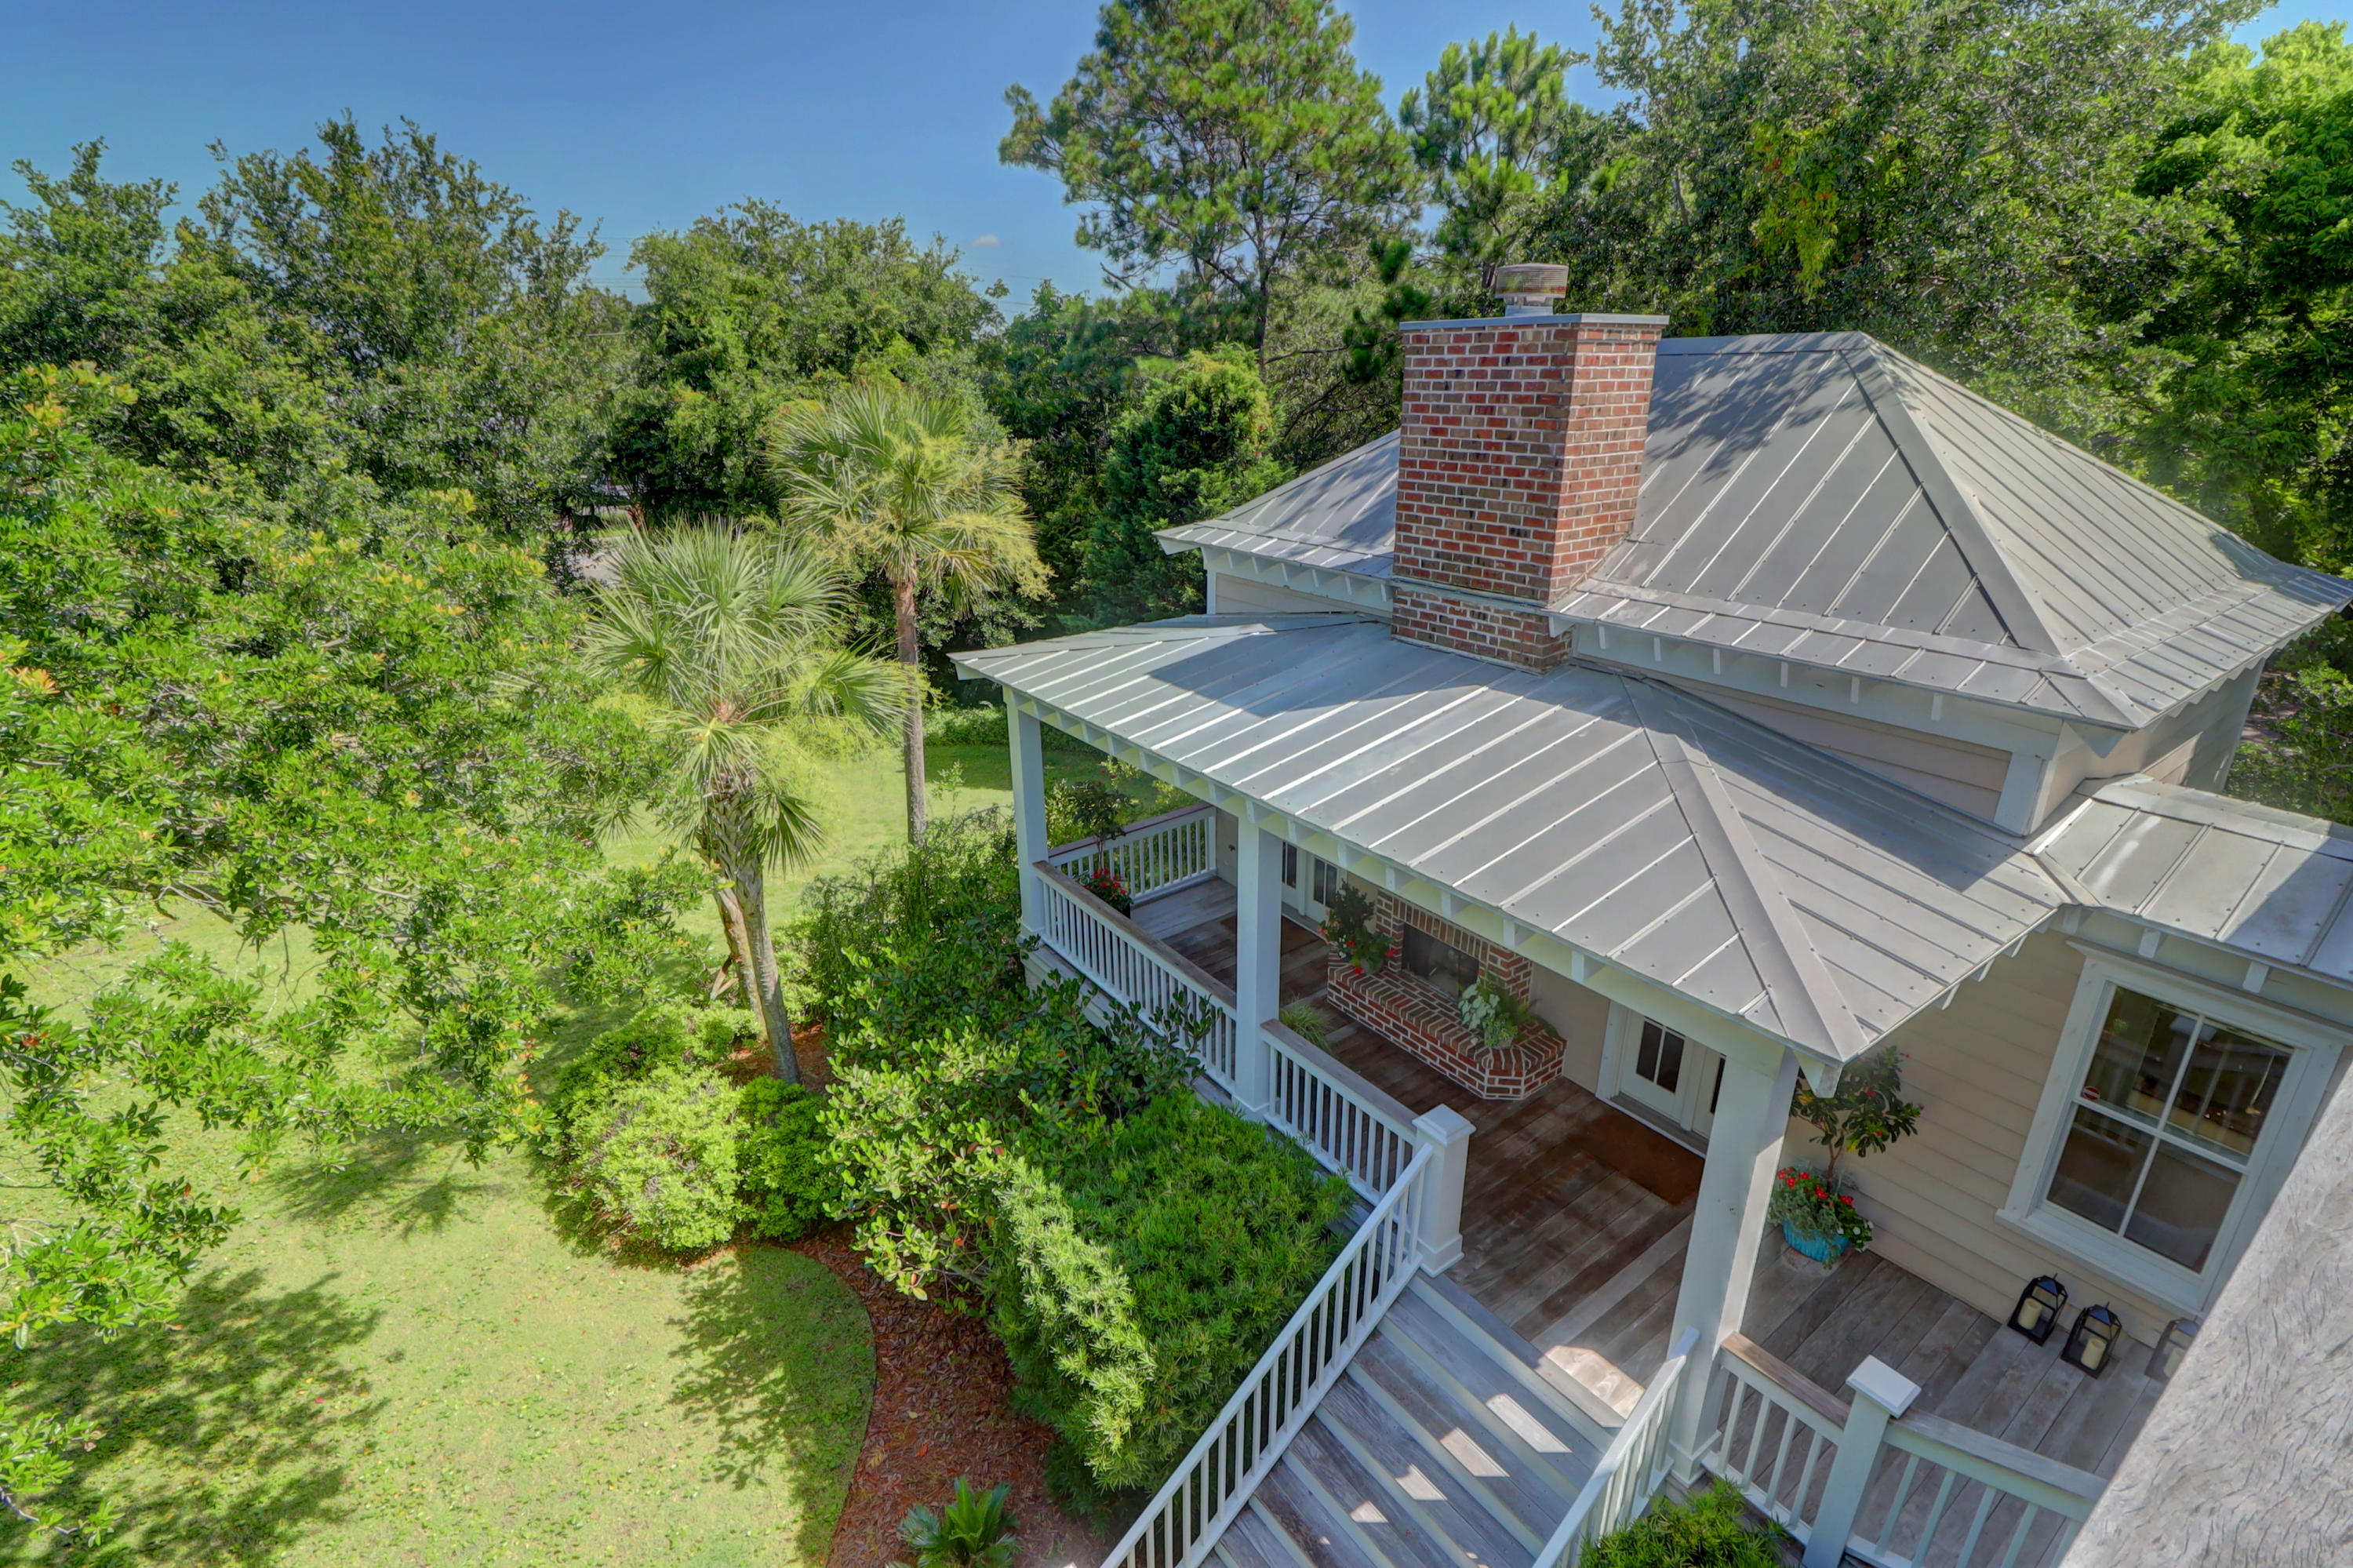 Sullivans Island Homes For Sale - 320 Station 28 1/2, Sullivans Island, SC - 4